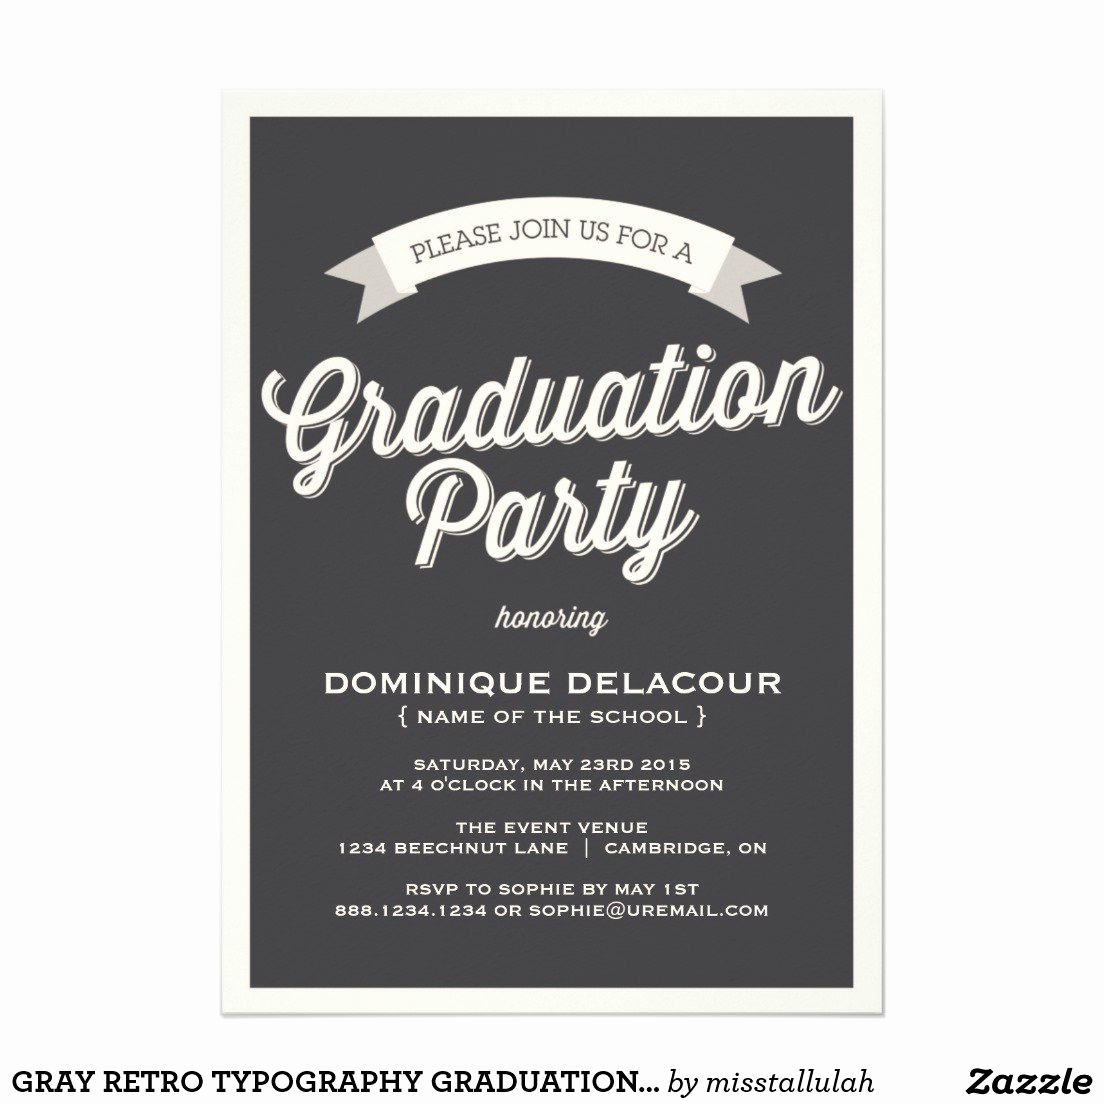 Graduation Party Invitation Text Fresh Graduation Dinner Invitation Wording